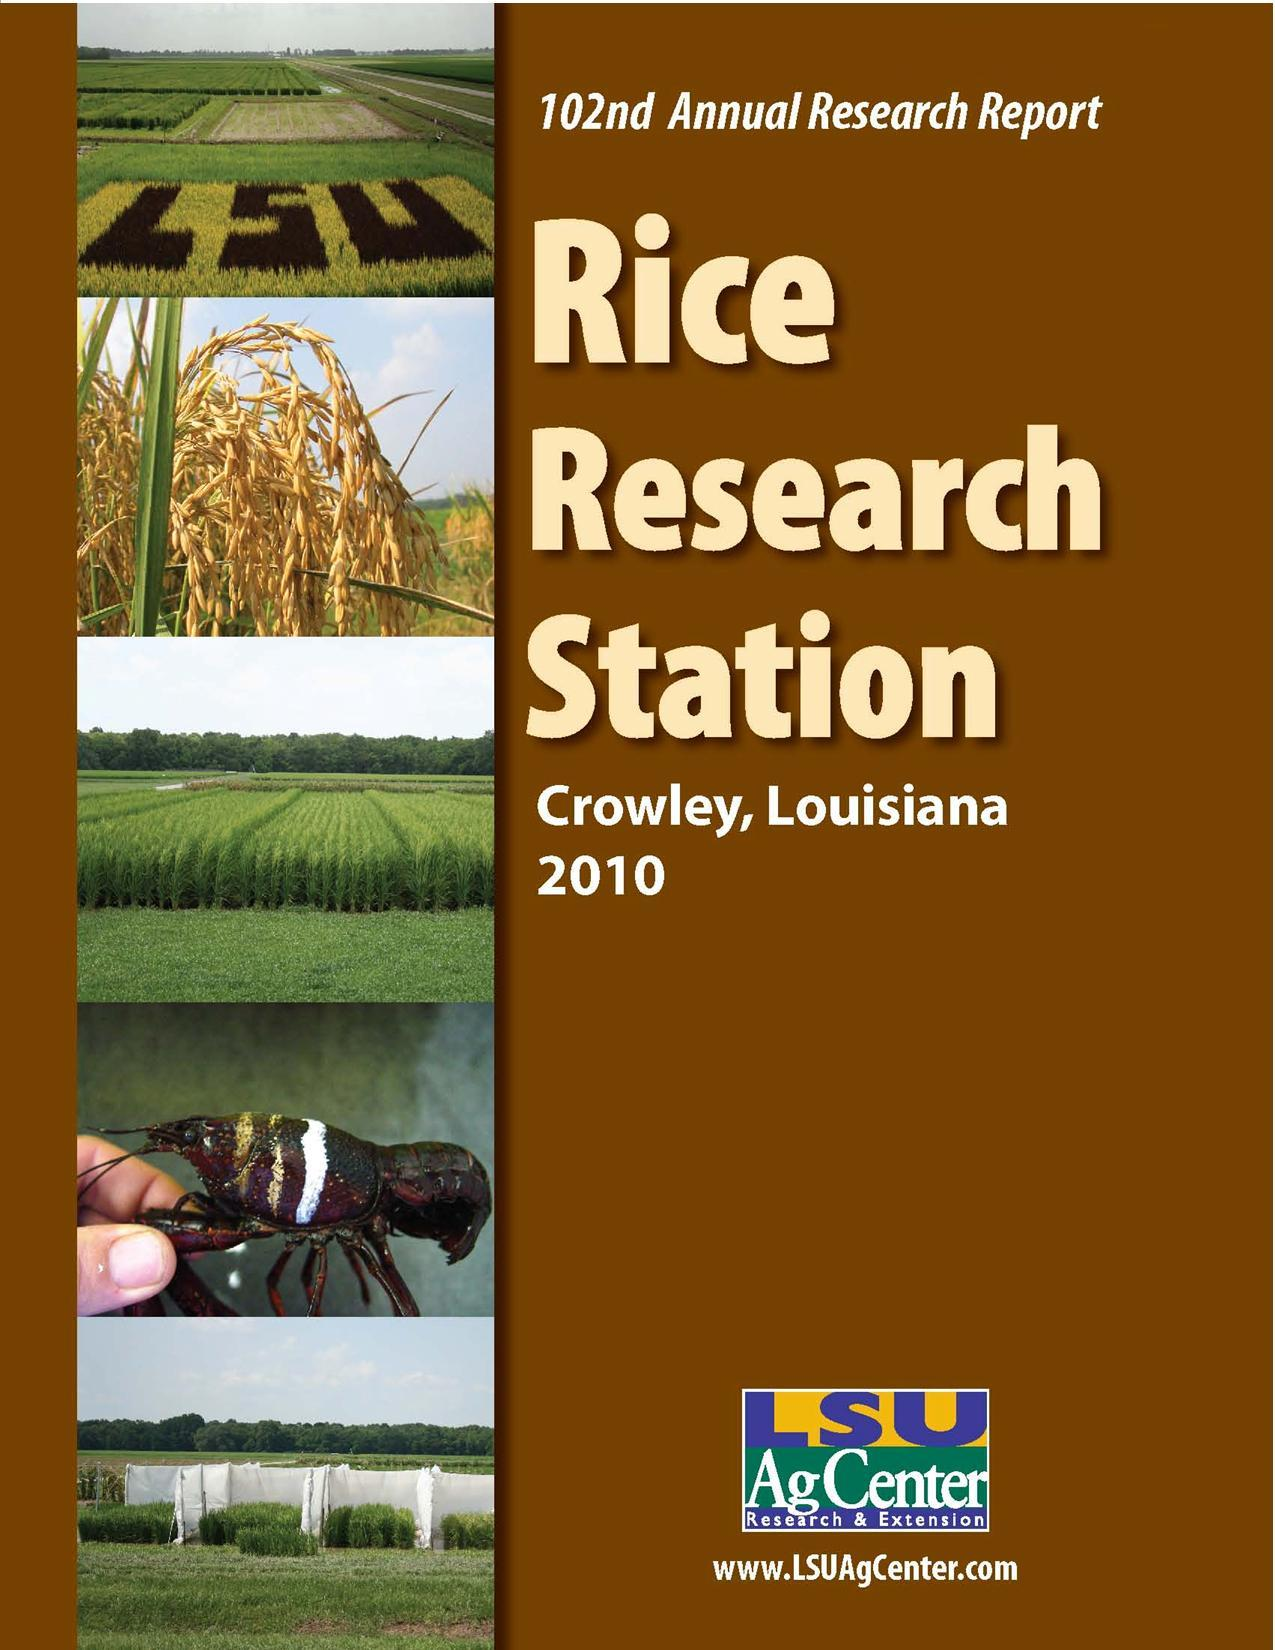 2010 Rice Research Station Annual Report